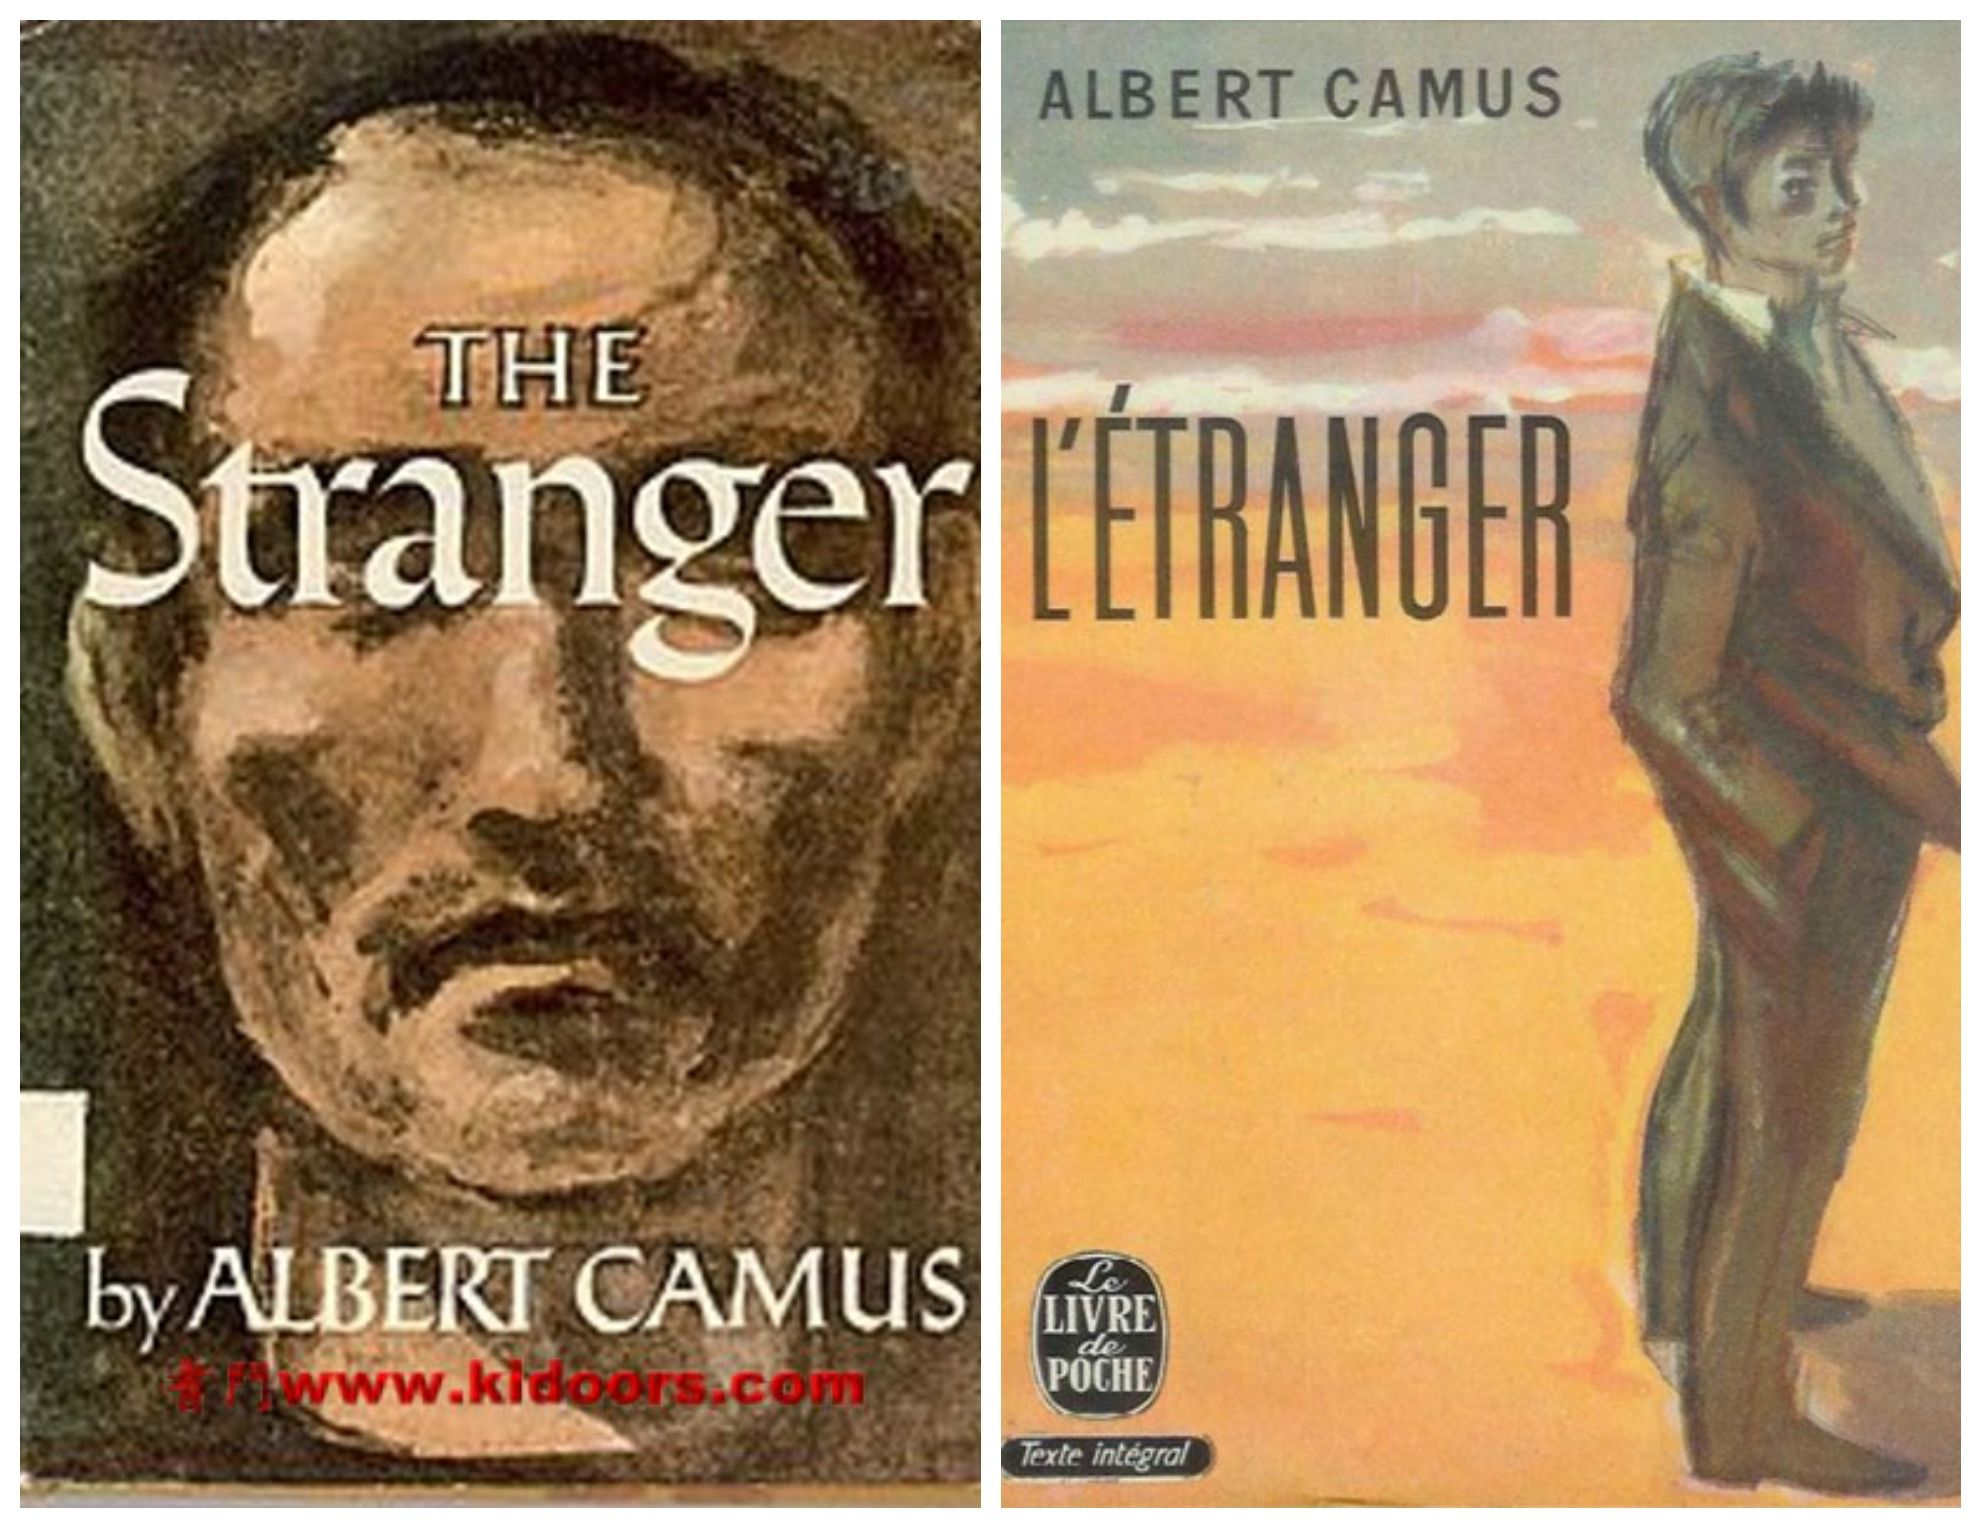 u0026quot from l u2019 u00e9tranger  the stranger  by albert camus  at